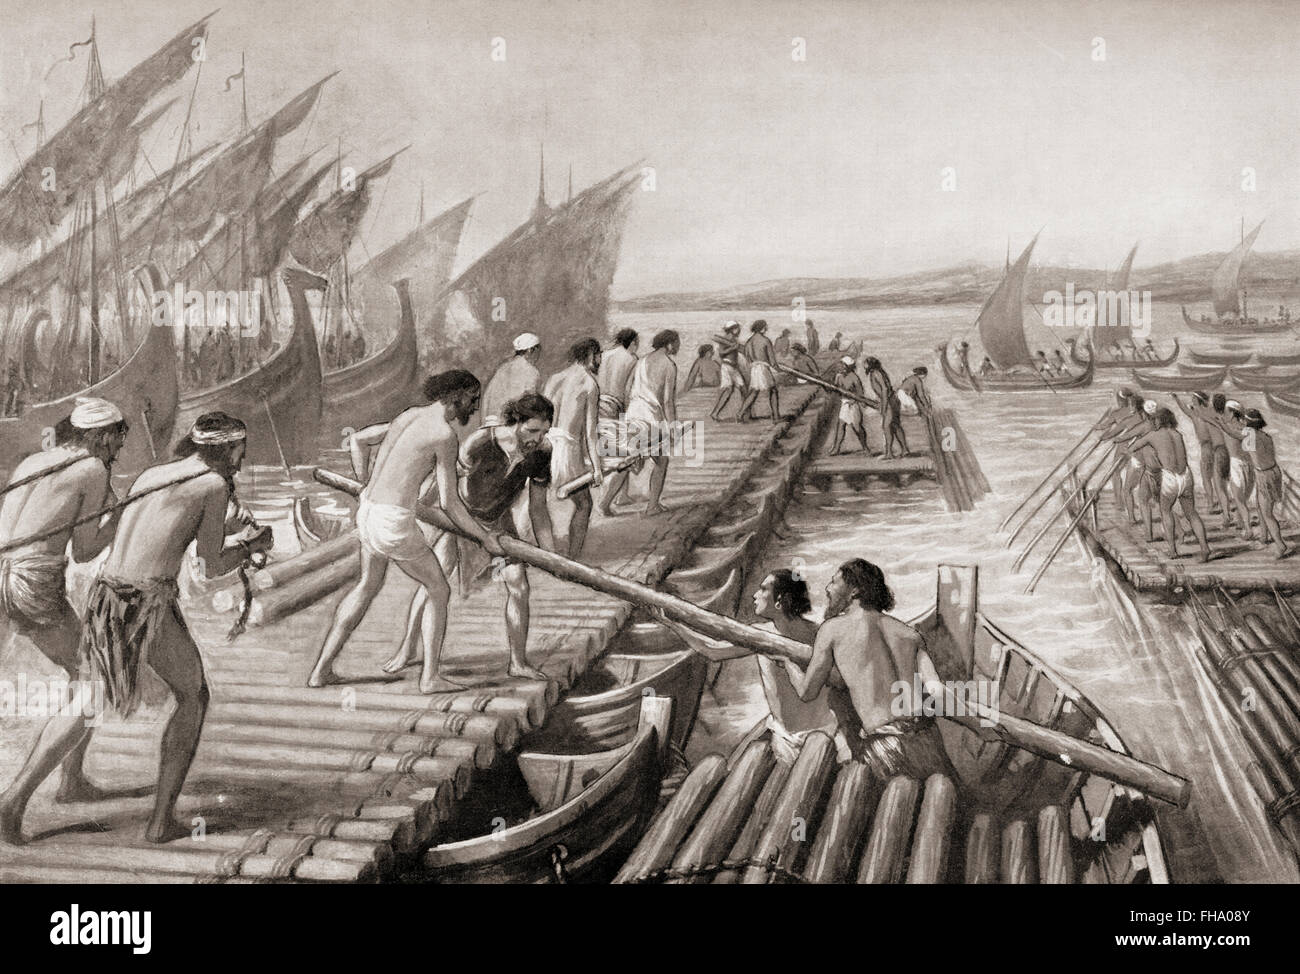 Phoenician sailors building a pontoon bridge across the Hellespont for Xerxes I of Persia, enabling him to invade - Stock Image